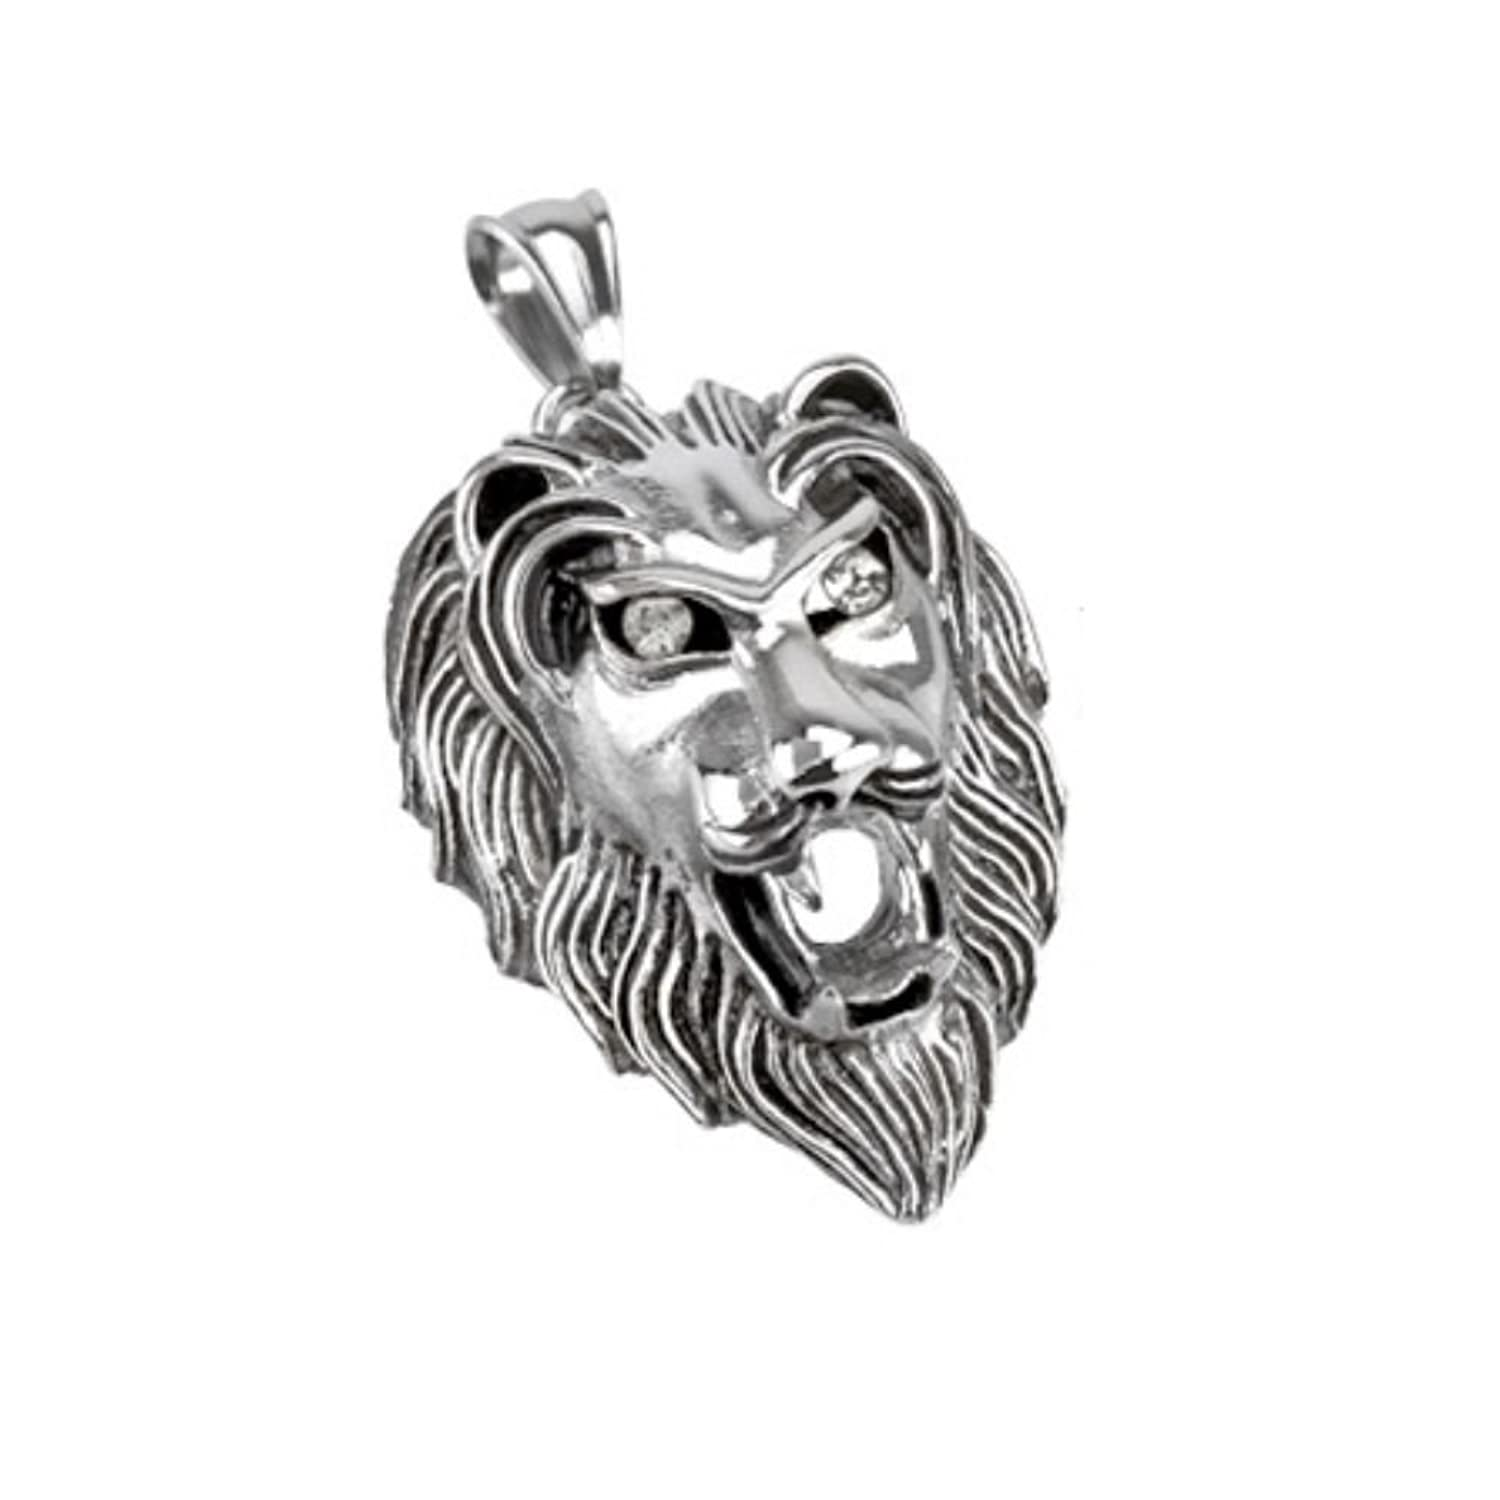 overstock accent product today shipping lion diamond and silver sterling bcbc gold free jewelry watches palmbeach over chain pendant